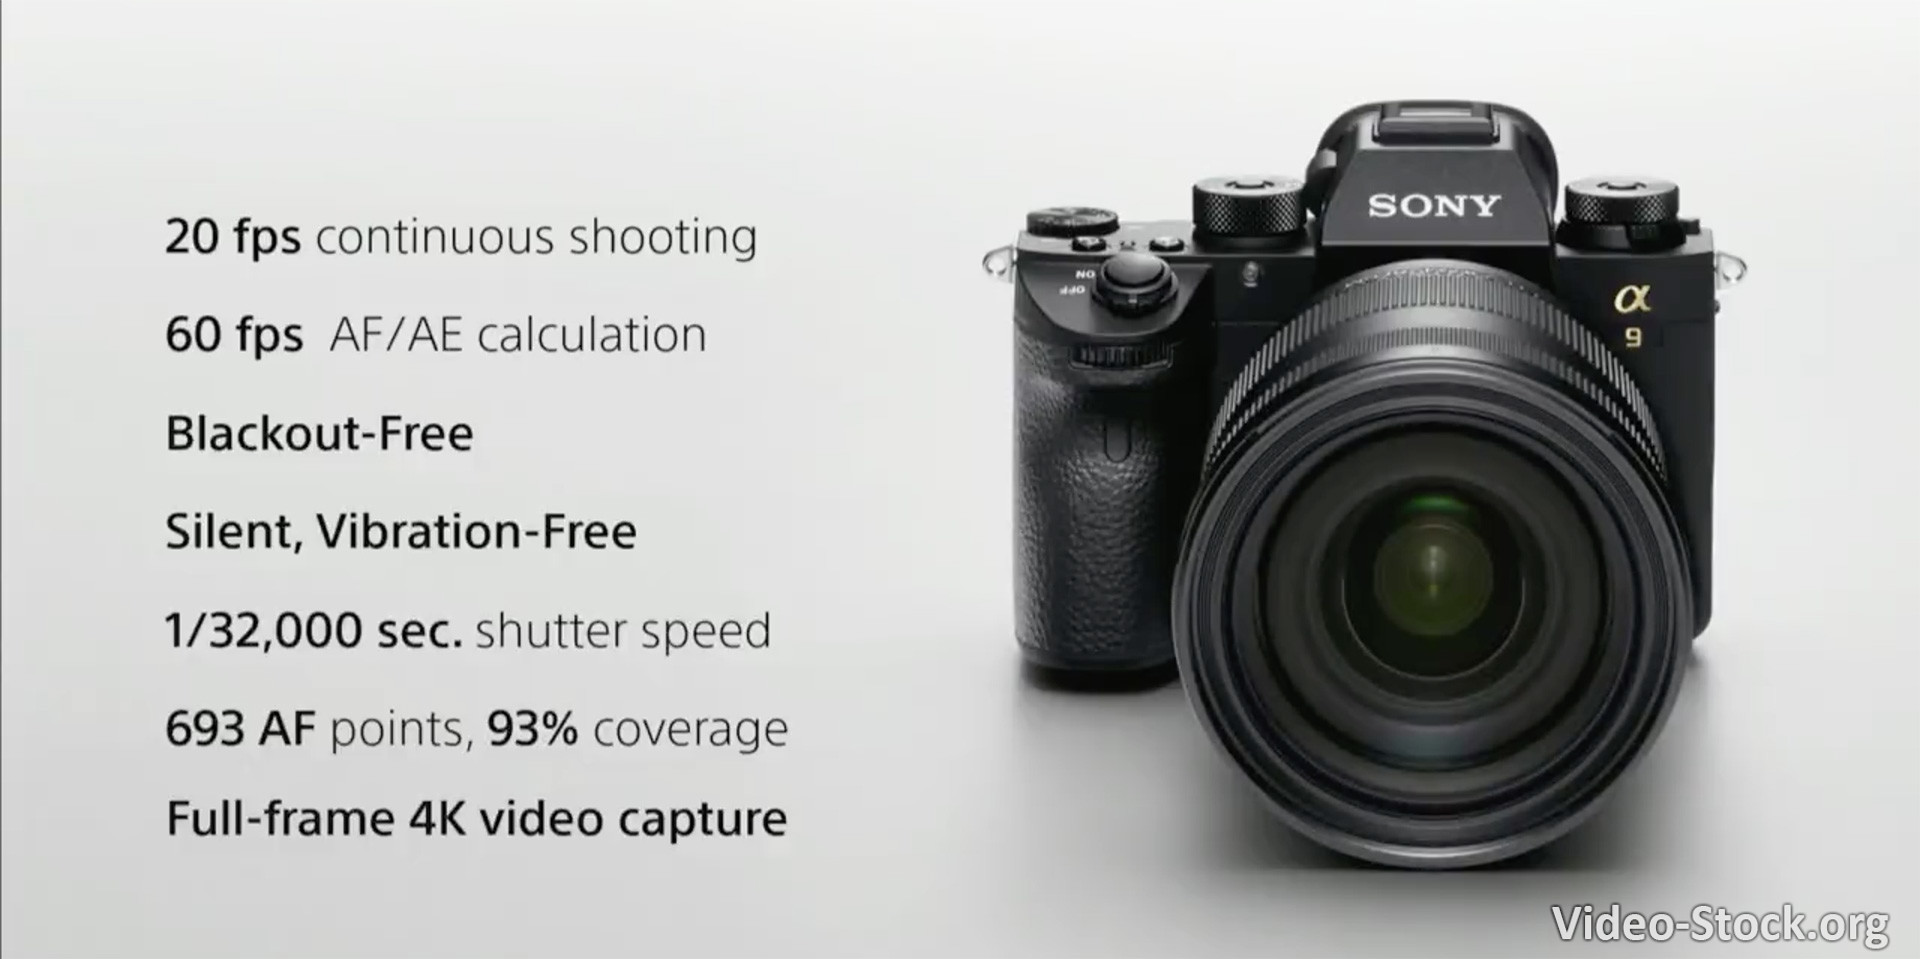 Announced Sony A9 is a DSLR killer camera with no 4K 60fps